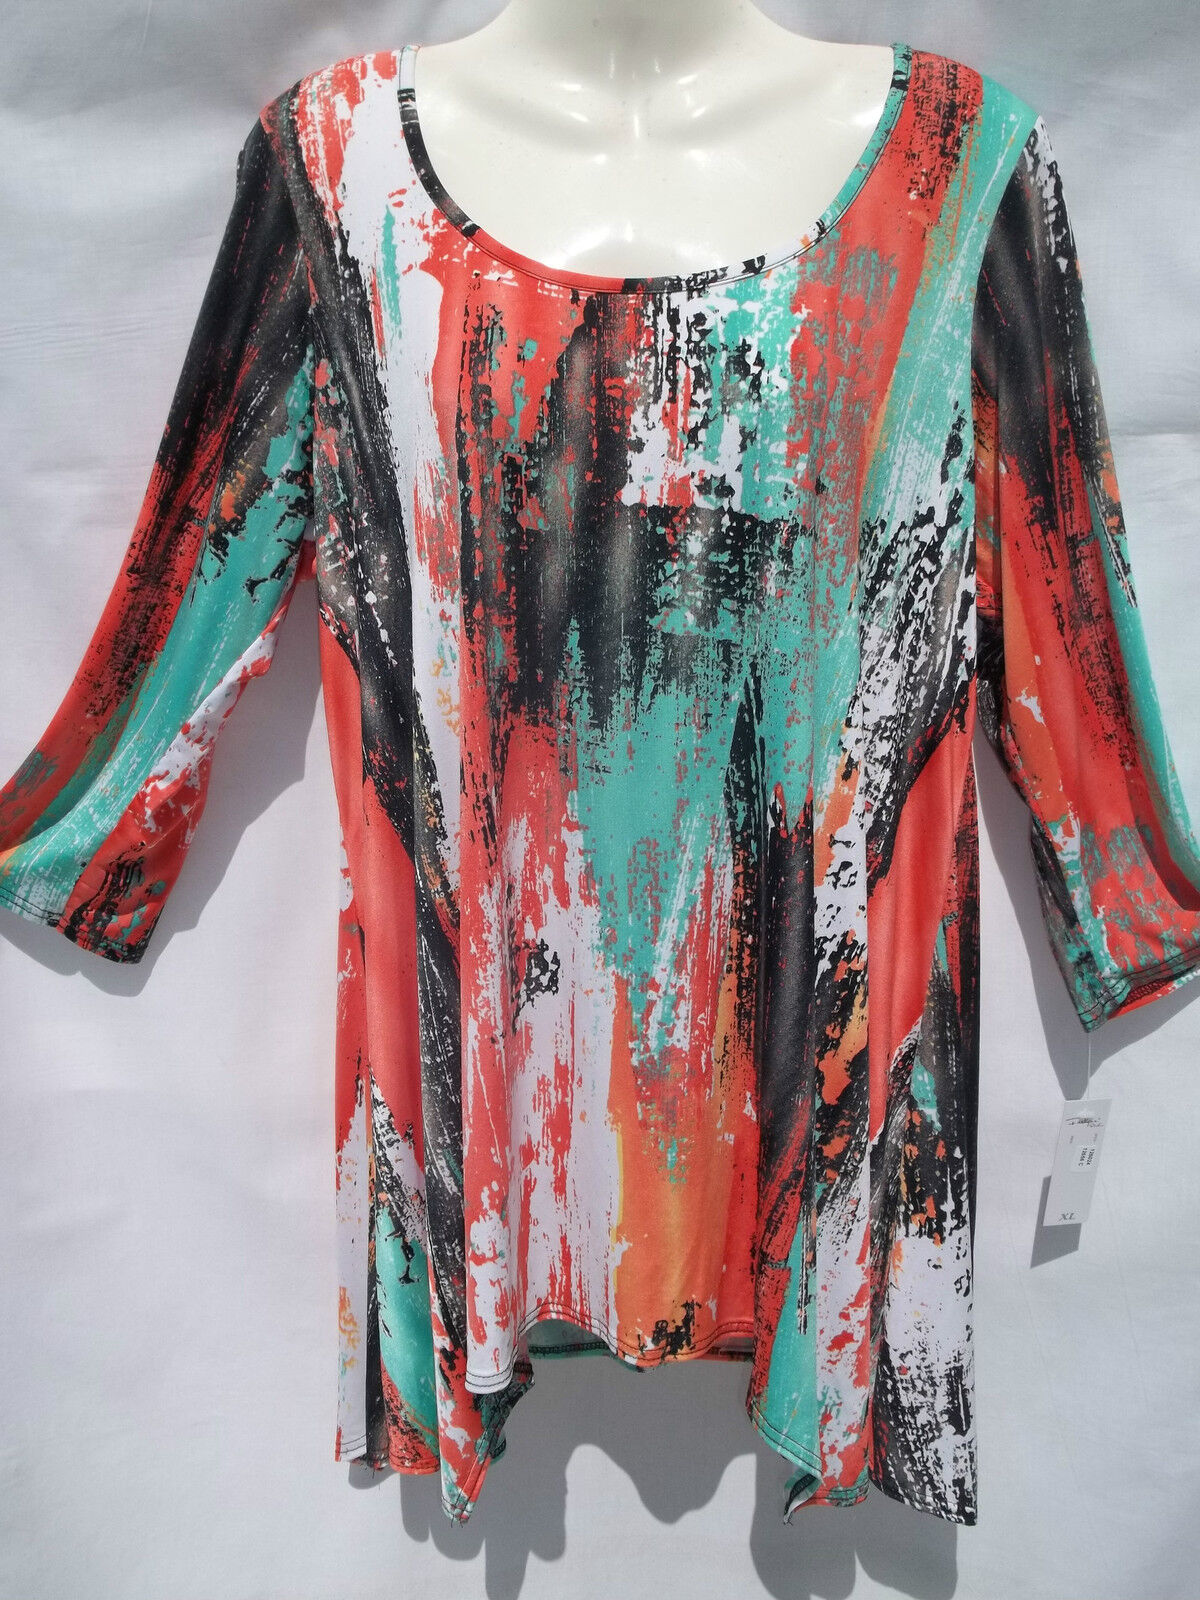 FASHQUE TRAVEL KNIT LONG TOP POINTED SIDES      XLRG    CORAL MULTI